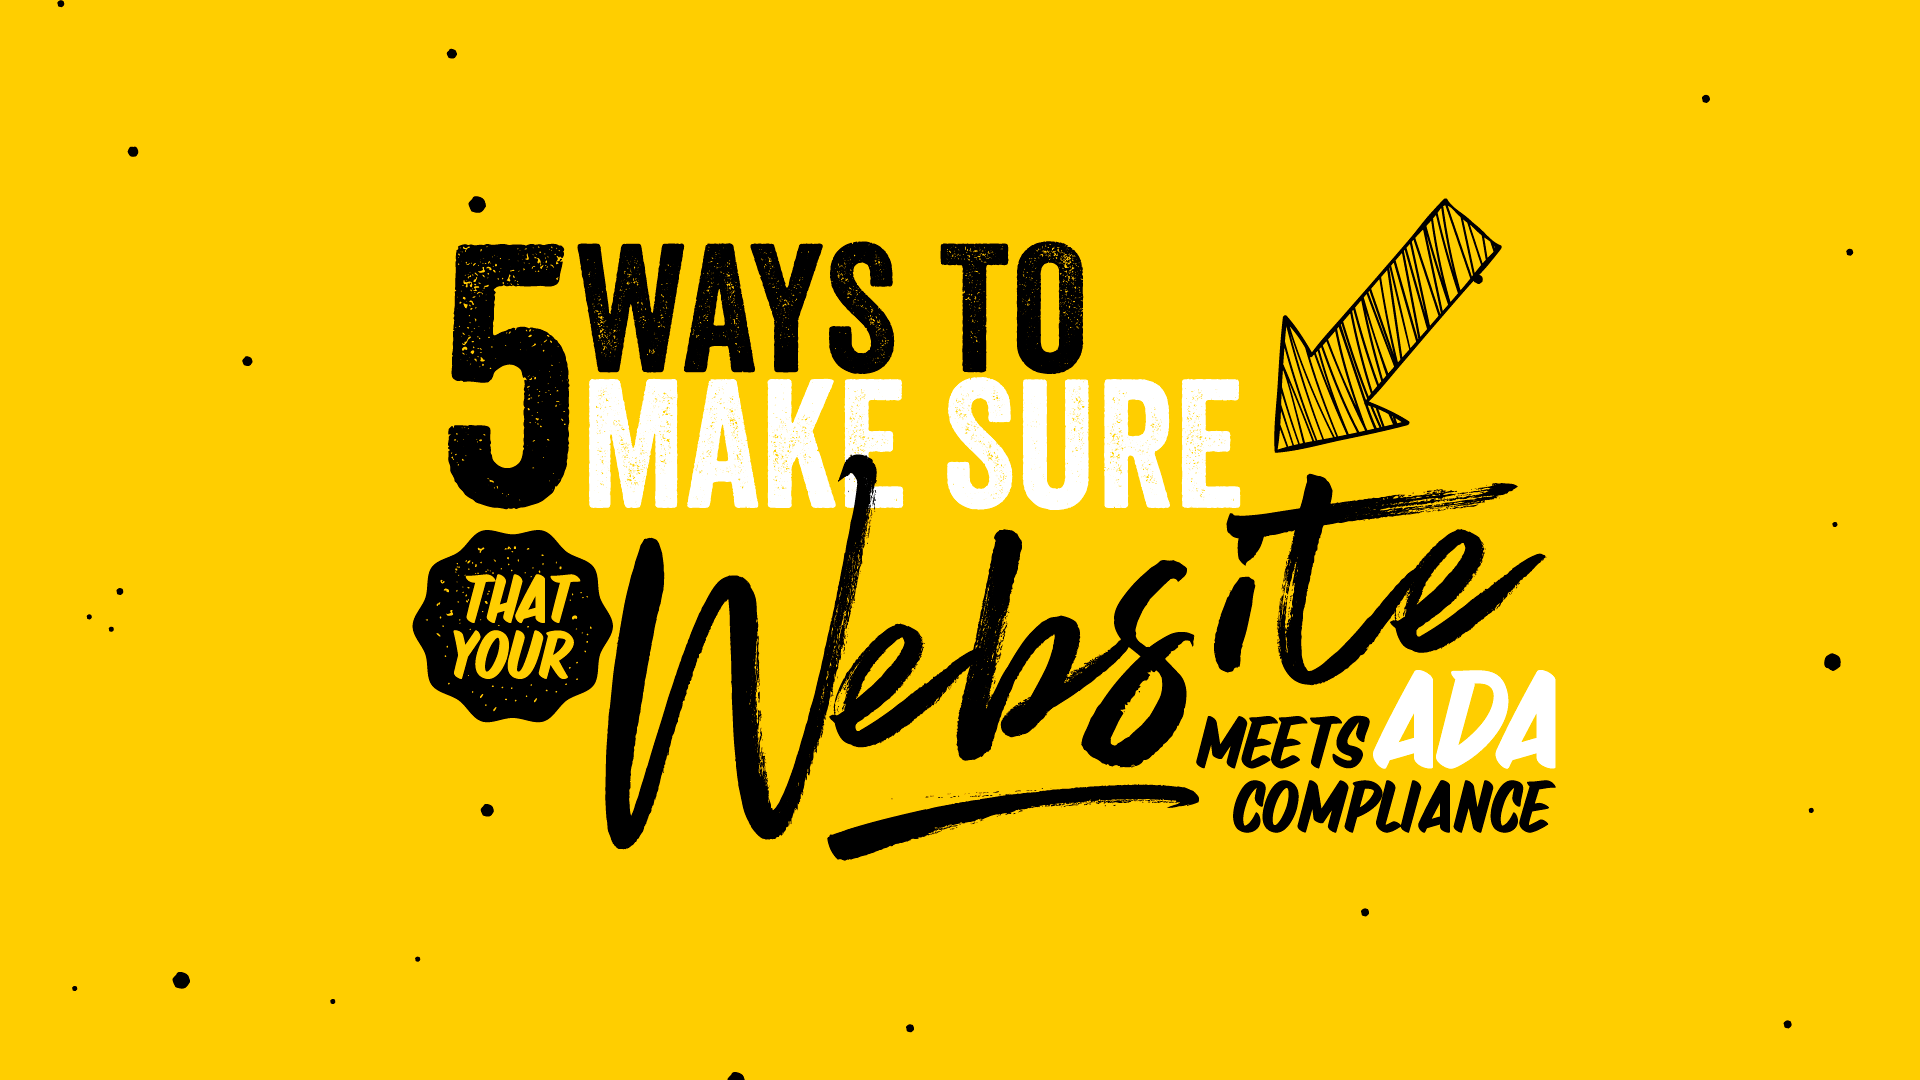 5 Ways to Make Sure that Your Website Meets ADA Compliance